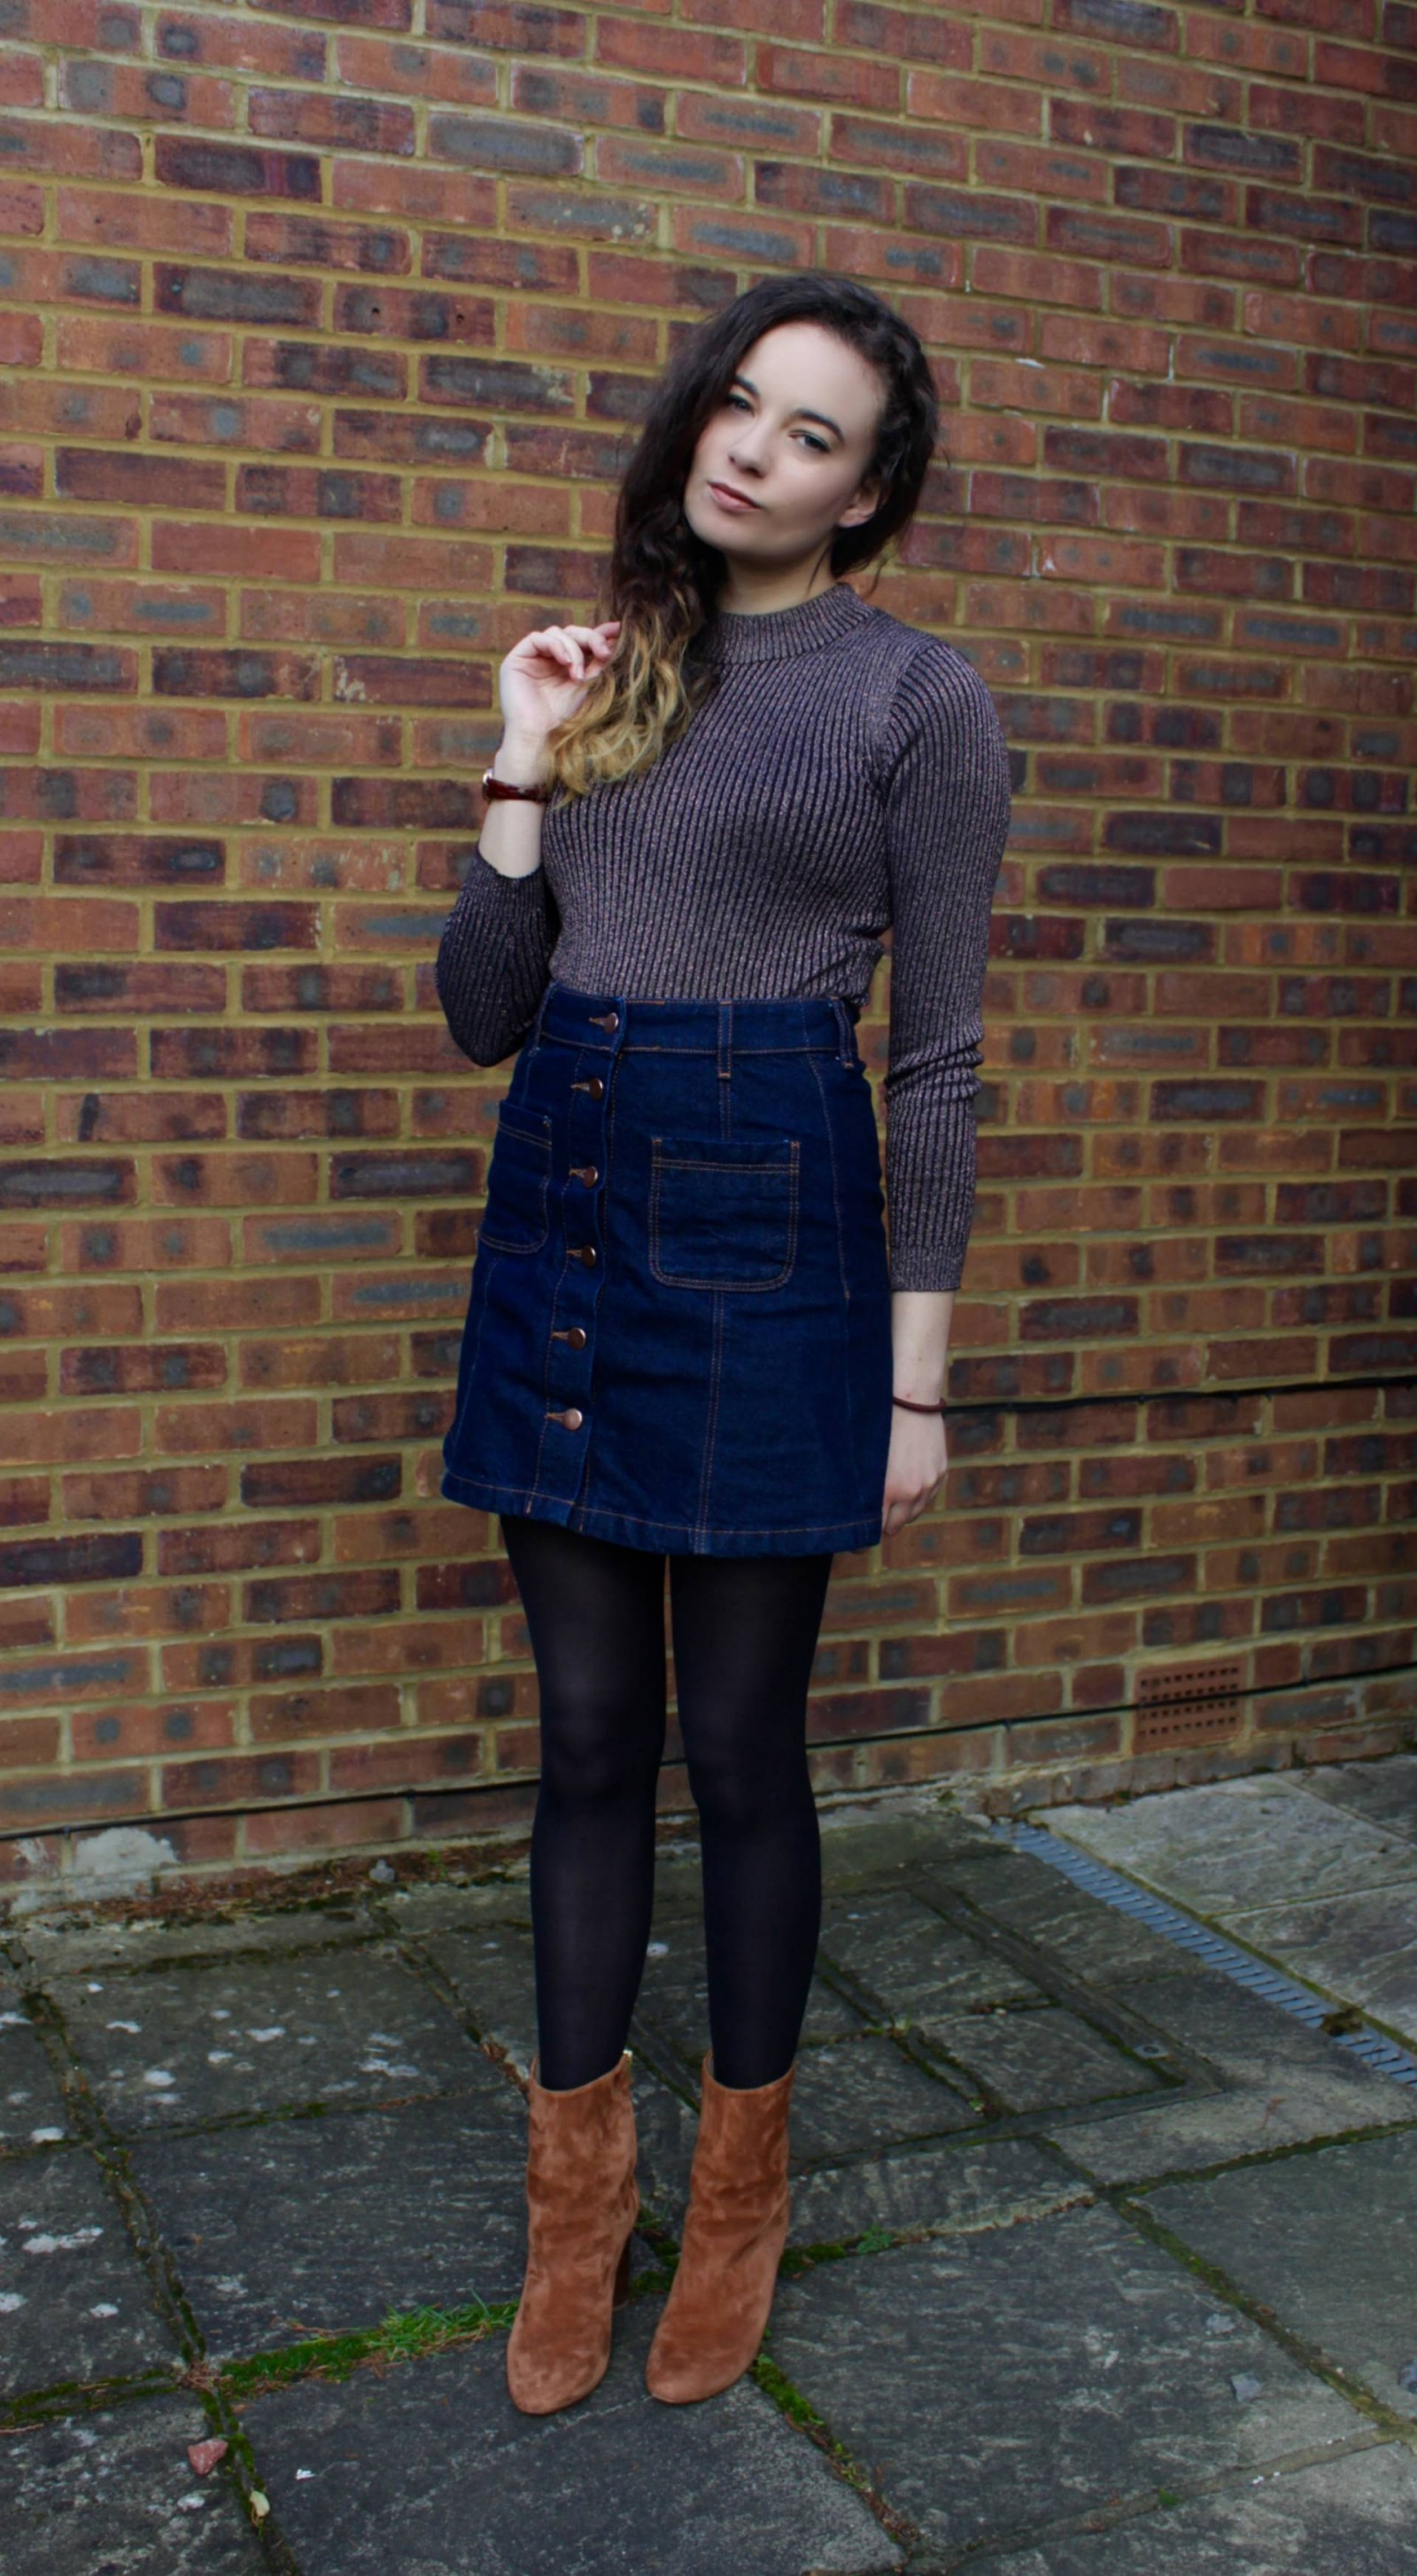 Denim skirt outfit with head tilted to the side